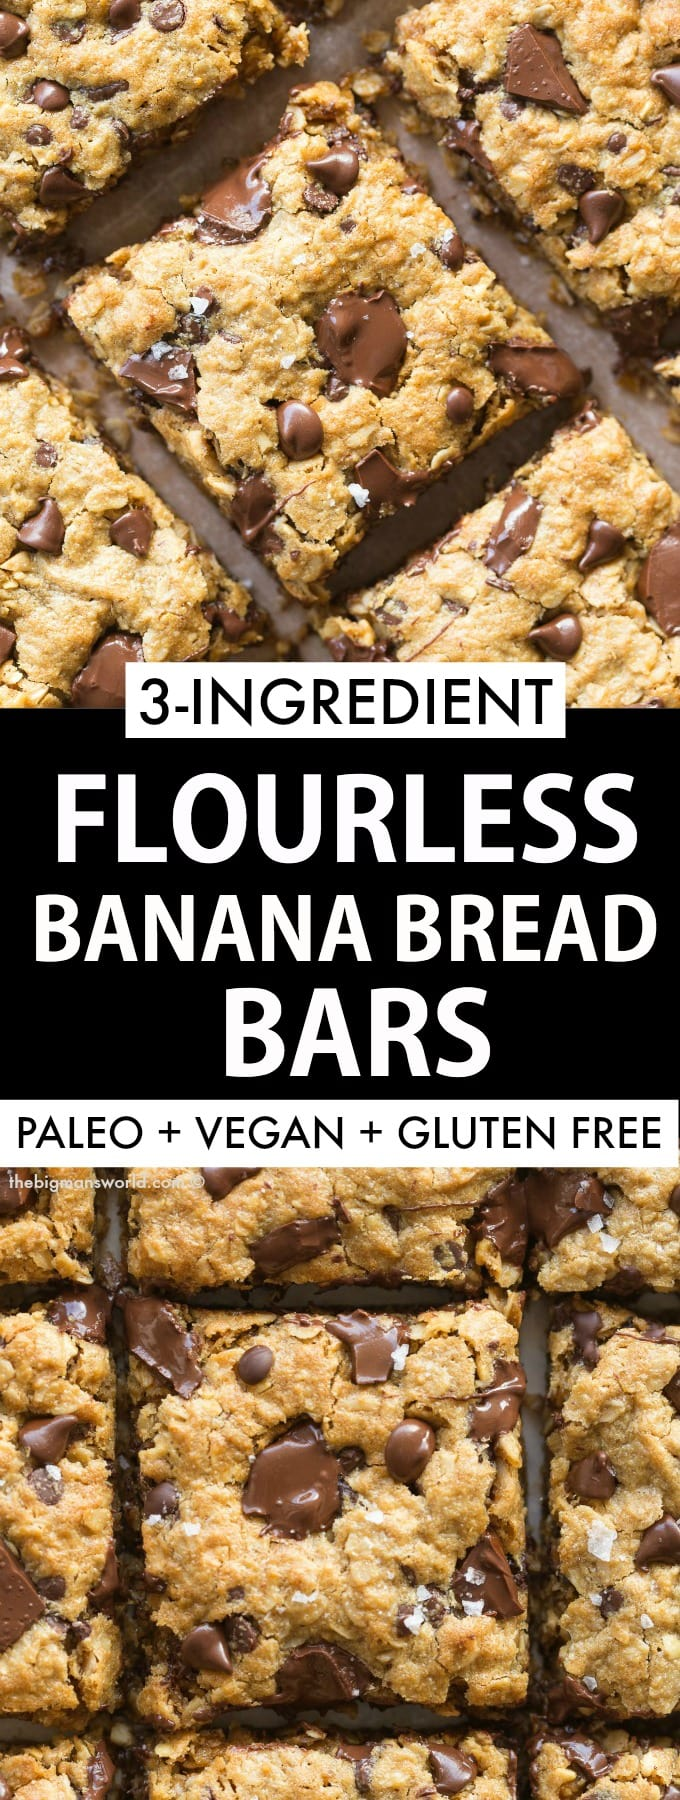 Healthy Flourless Banana Bread Breakfast bars made with oatmeal, banana and peanut butter!